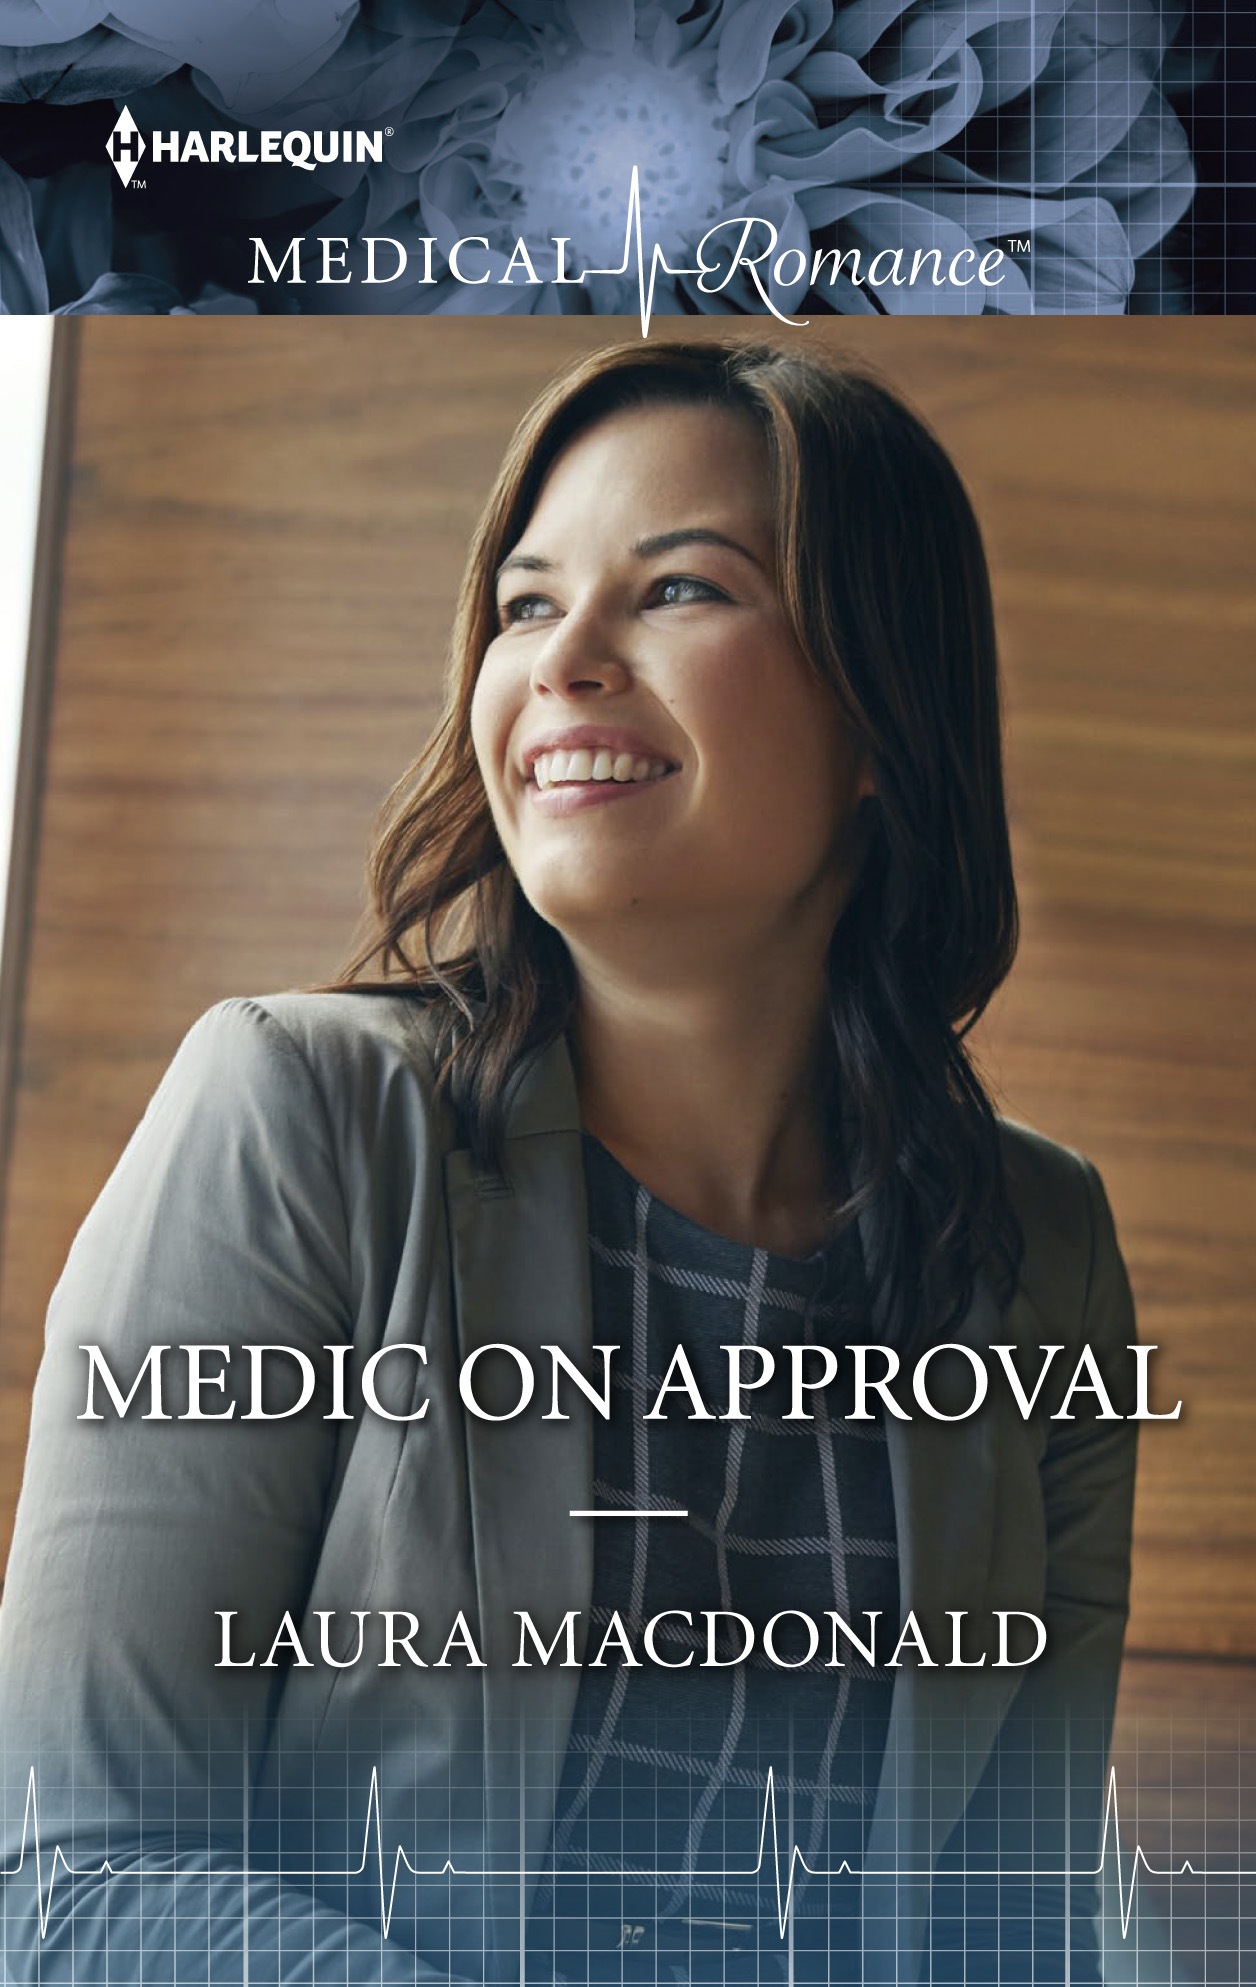 Medic on Approval